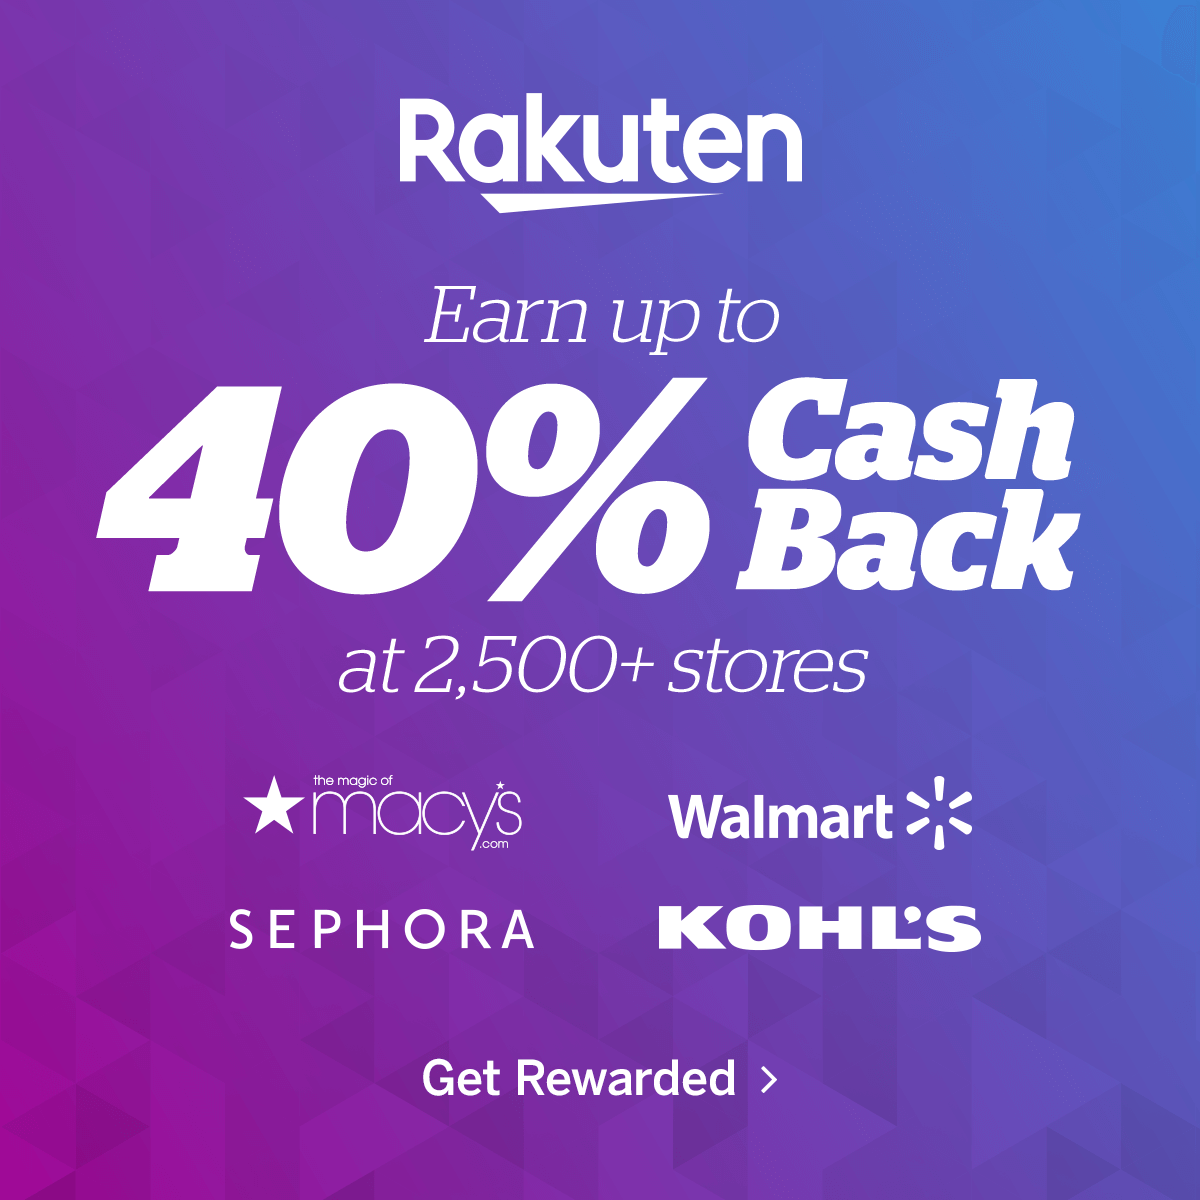 Earn up to 40% cash back at 2,500 stores